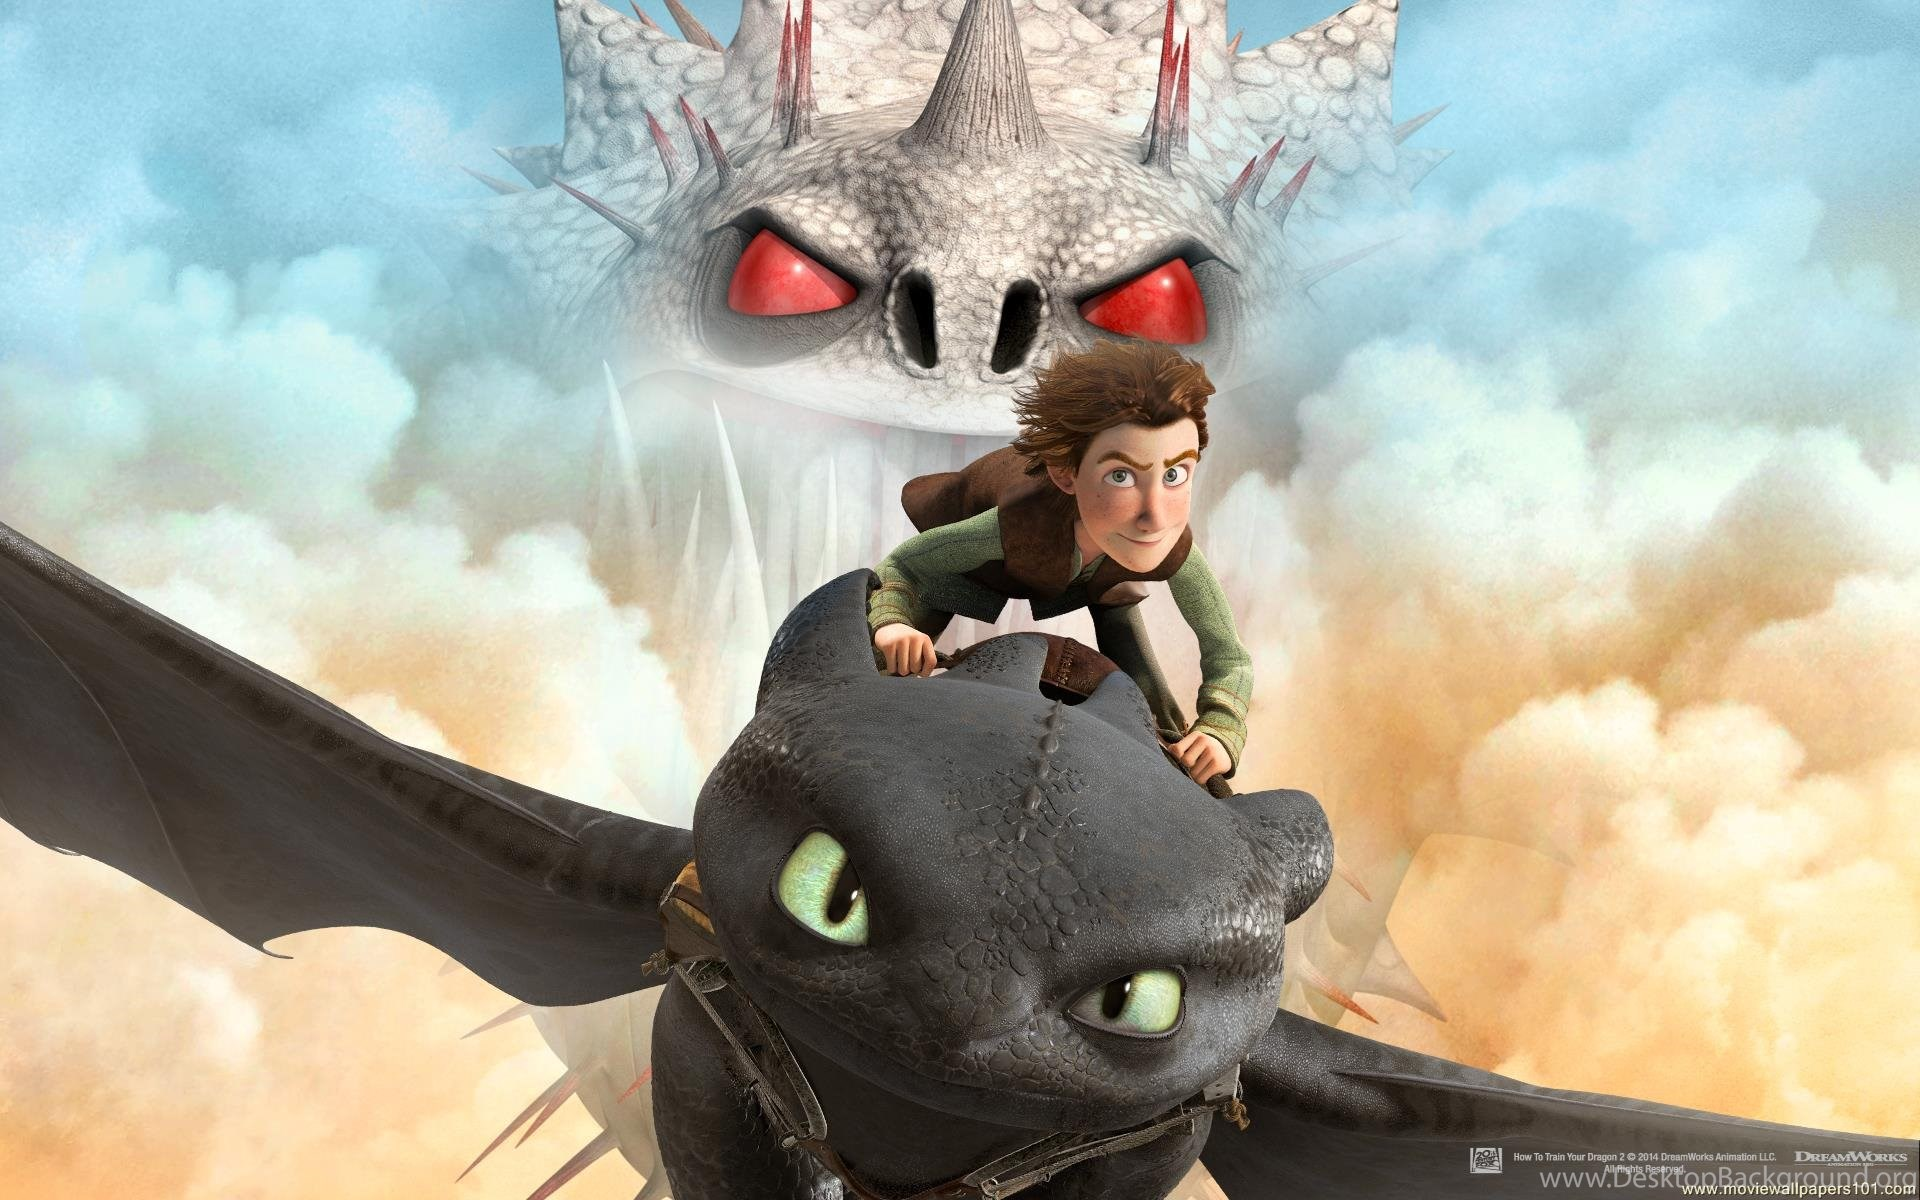 How To Train Your Dragon 2 Wallpapers 1680x1050 Desktop Background